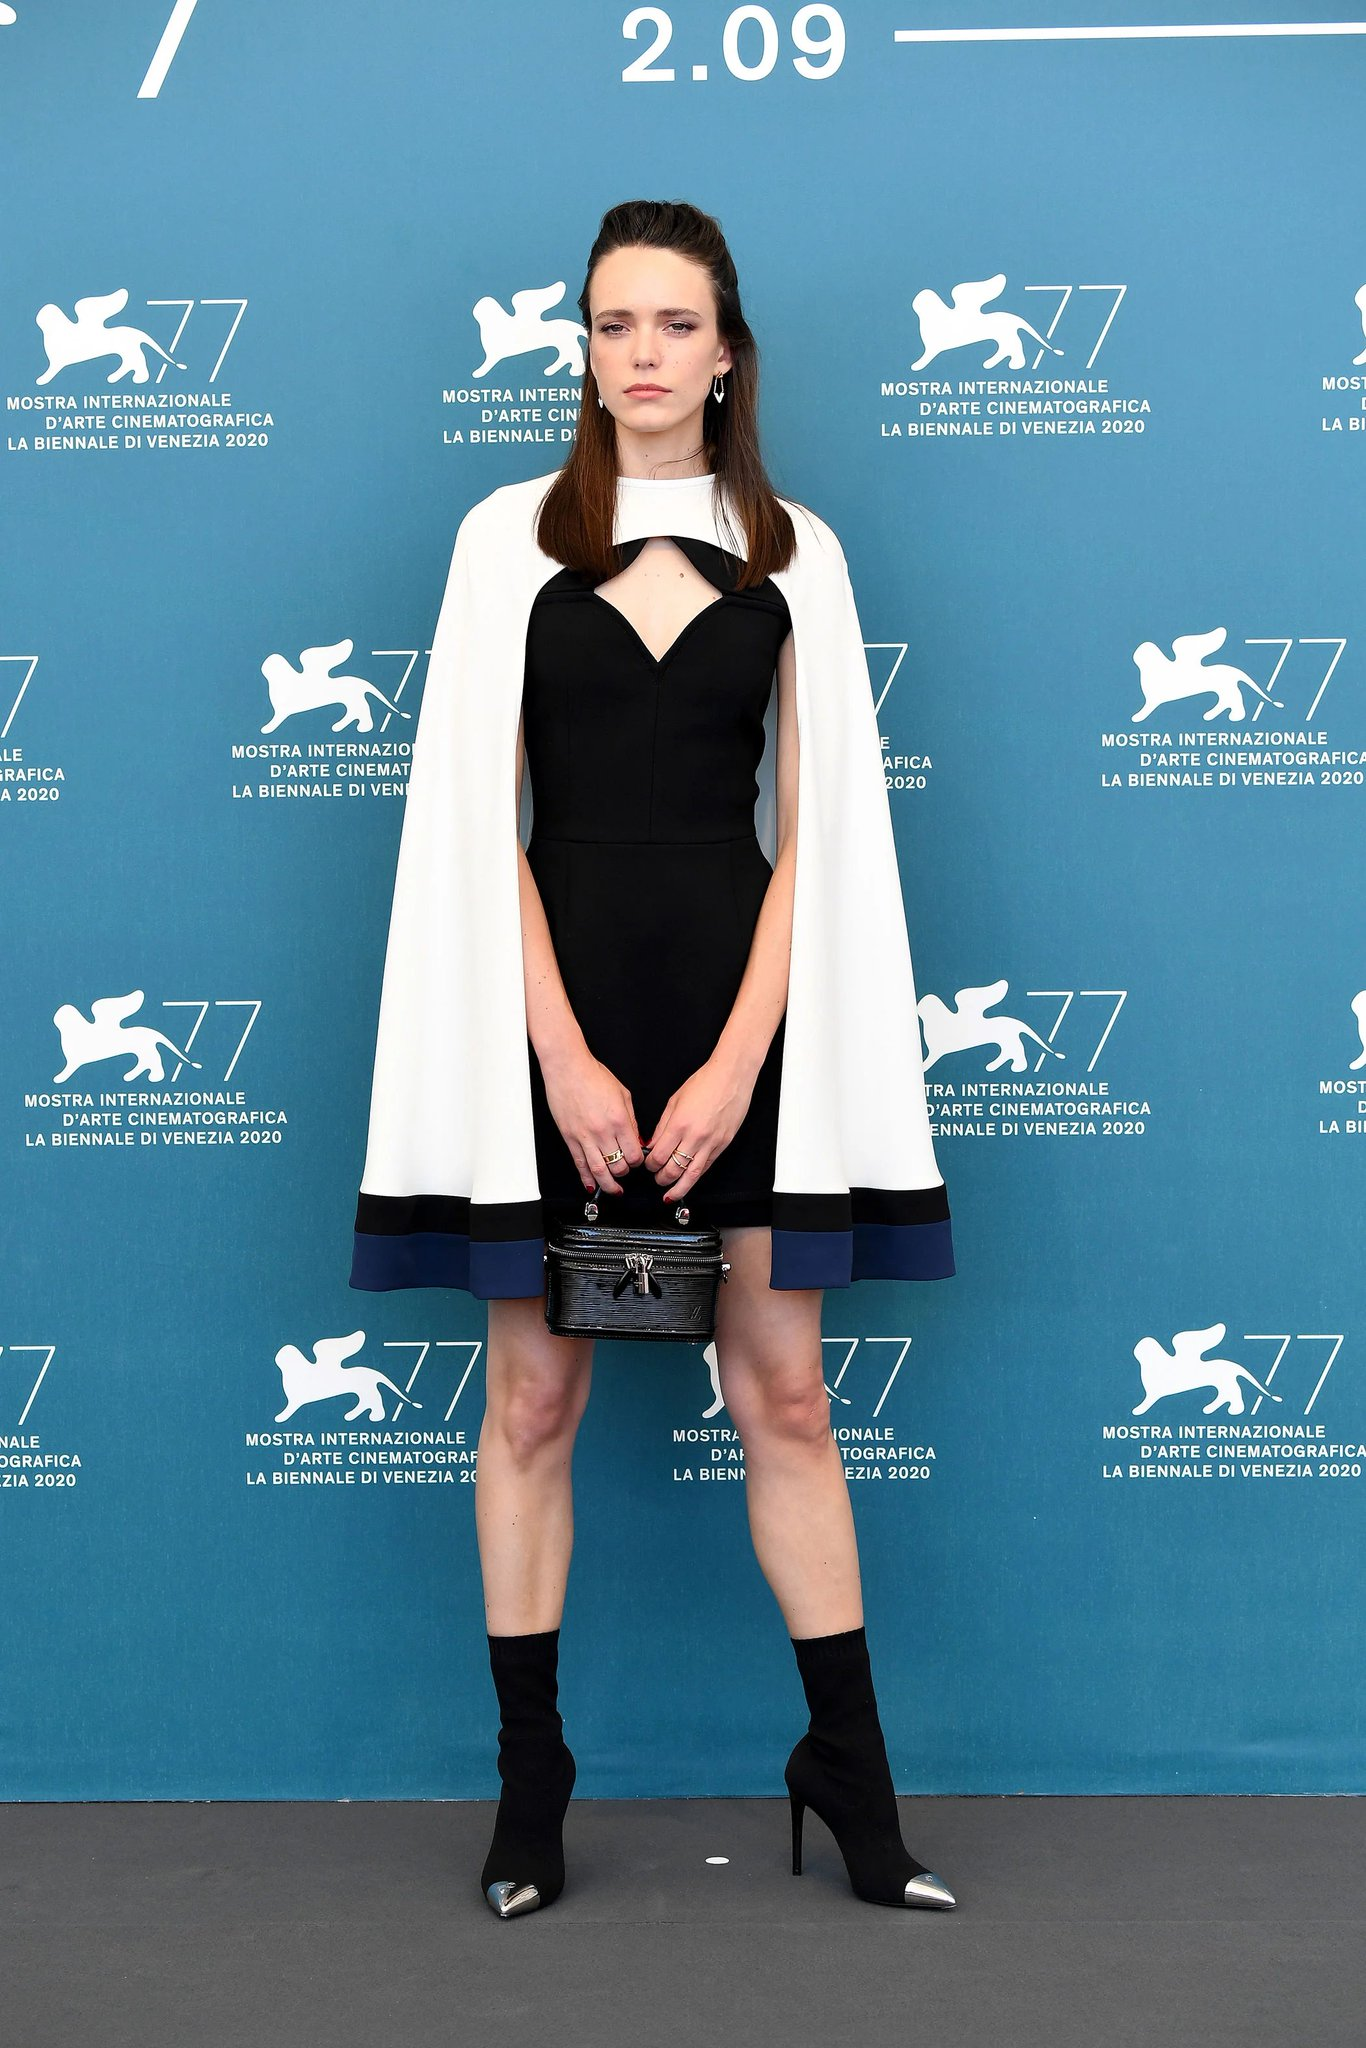 stacy-martin-in-louis-vuitton-amants-2020-venice-film-festival-photocall